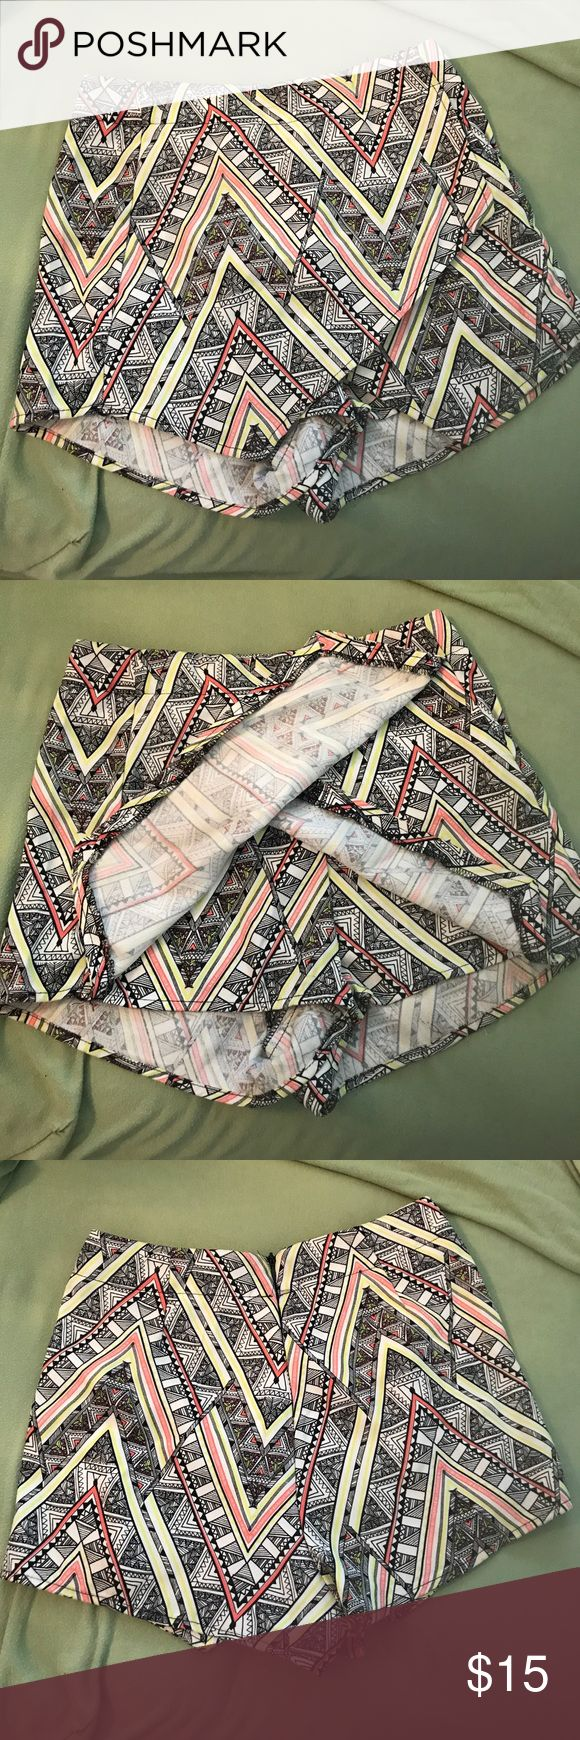 Aztec Print Shorts with front flap detail Aztec Print shorts with front flap detail UK Size 6. (Runs small) zipper back closure factorie Shorts